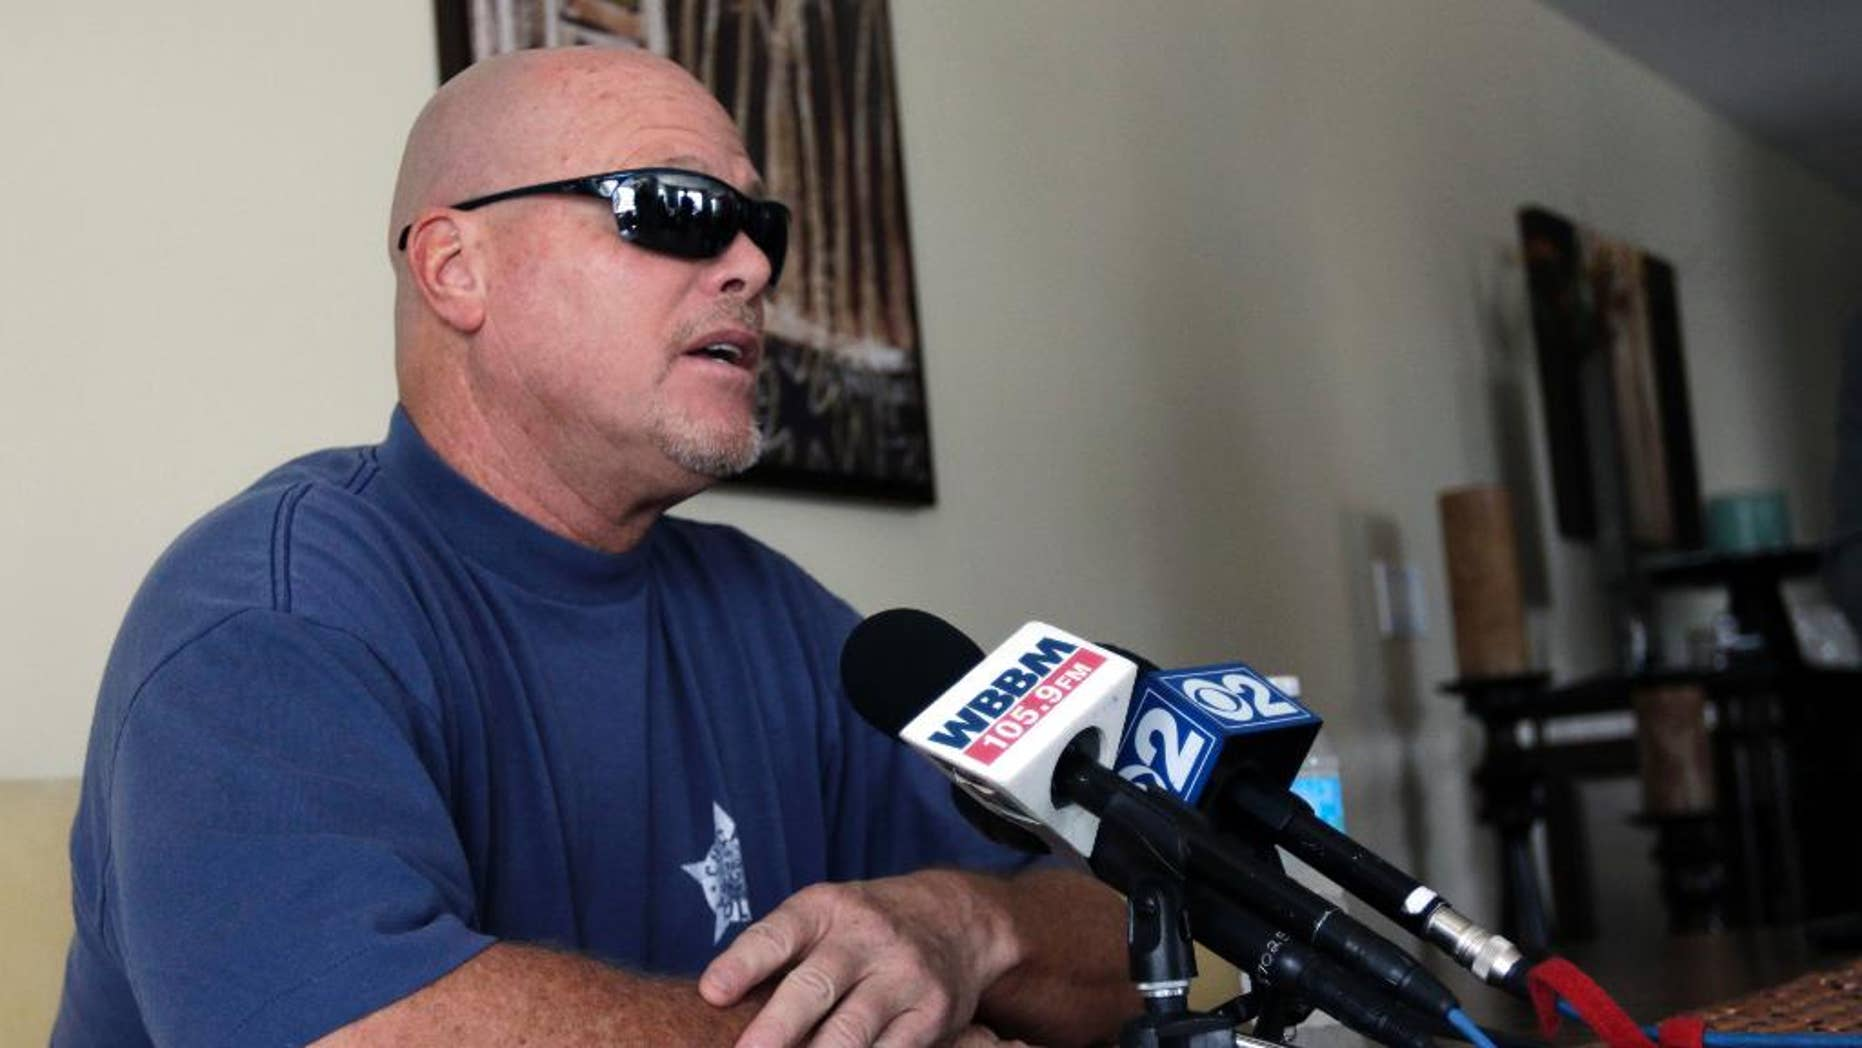 Former NFL football quarterback Jim McMahon speaks during a news conference Tuesday, June 17, 2014 in Chicago.  McMahon spoke of his ongoing battle with dementia that he believe is related to his years of hits he took while playing in the league. McMahon is part of a federal lawsuit filed in San Francisco accusing teams of illegally dispensing powerful narcotics and other drugs to keep players on the field without regard for their long-term health. He led the Chicago Bears to victory in the 1985 Super Bowl. (AP Photo/Stacy Thacker)